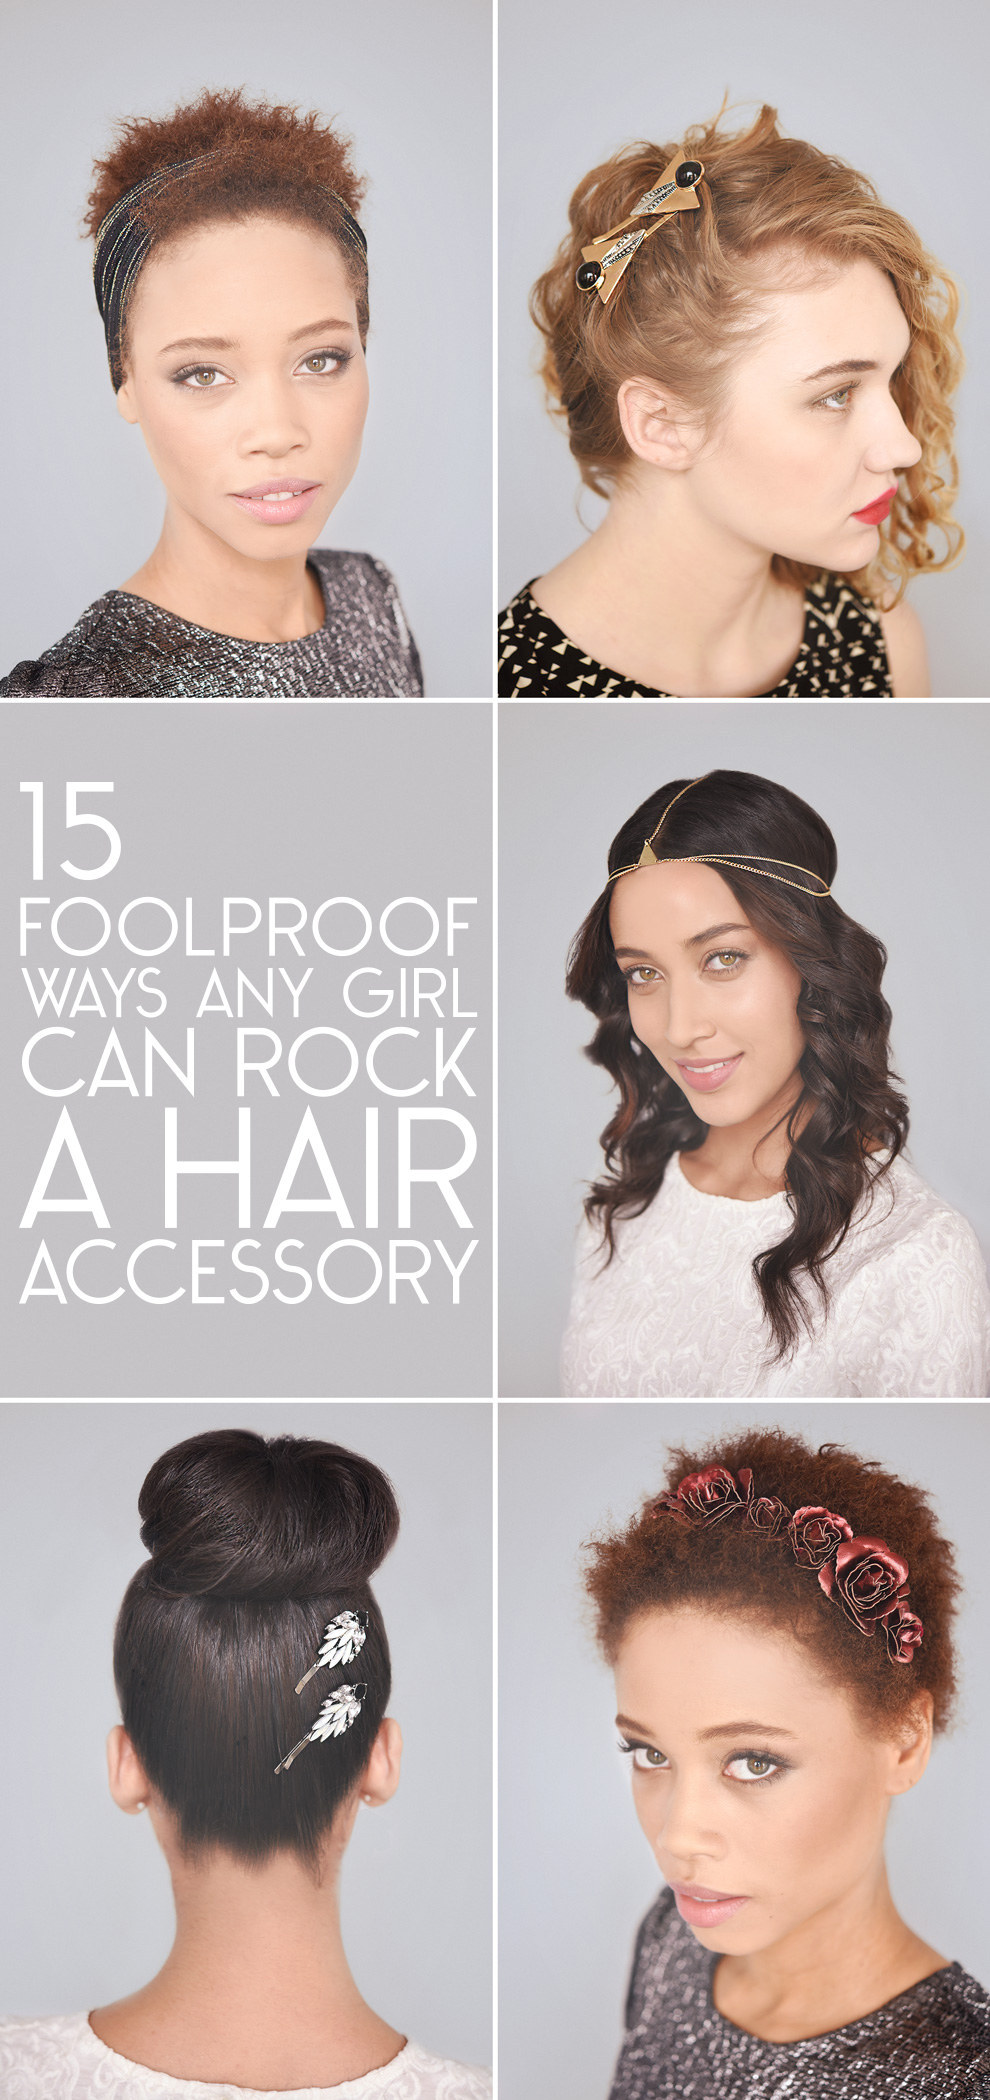 15 Foolproof Ways Any Girl Can Pull Off Hair Accessories